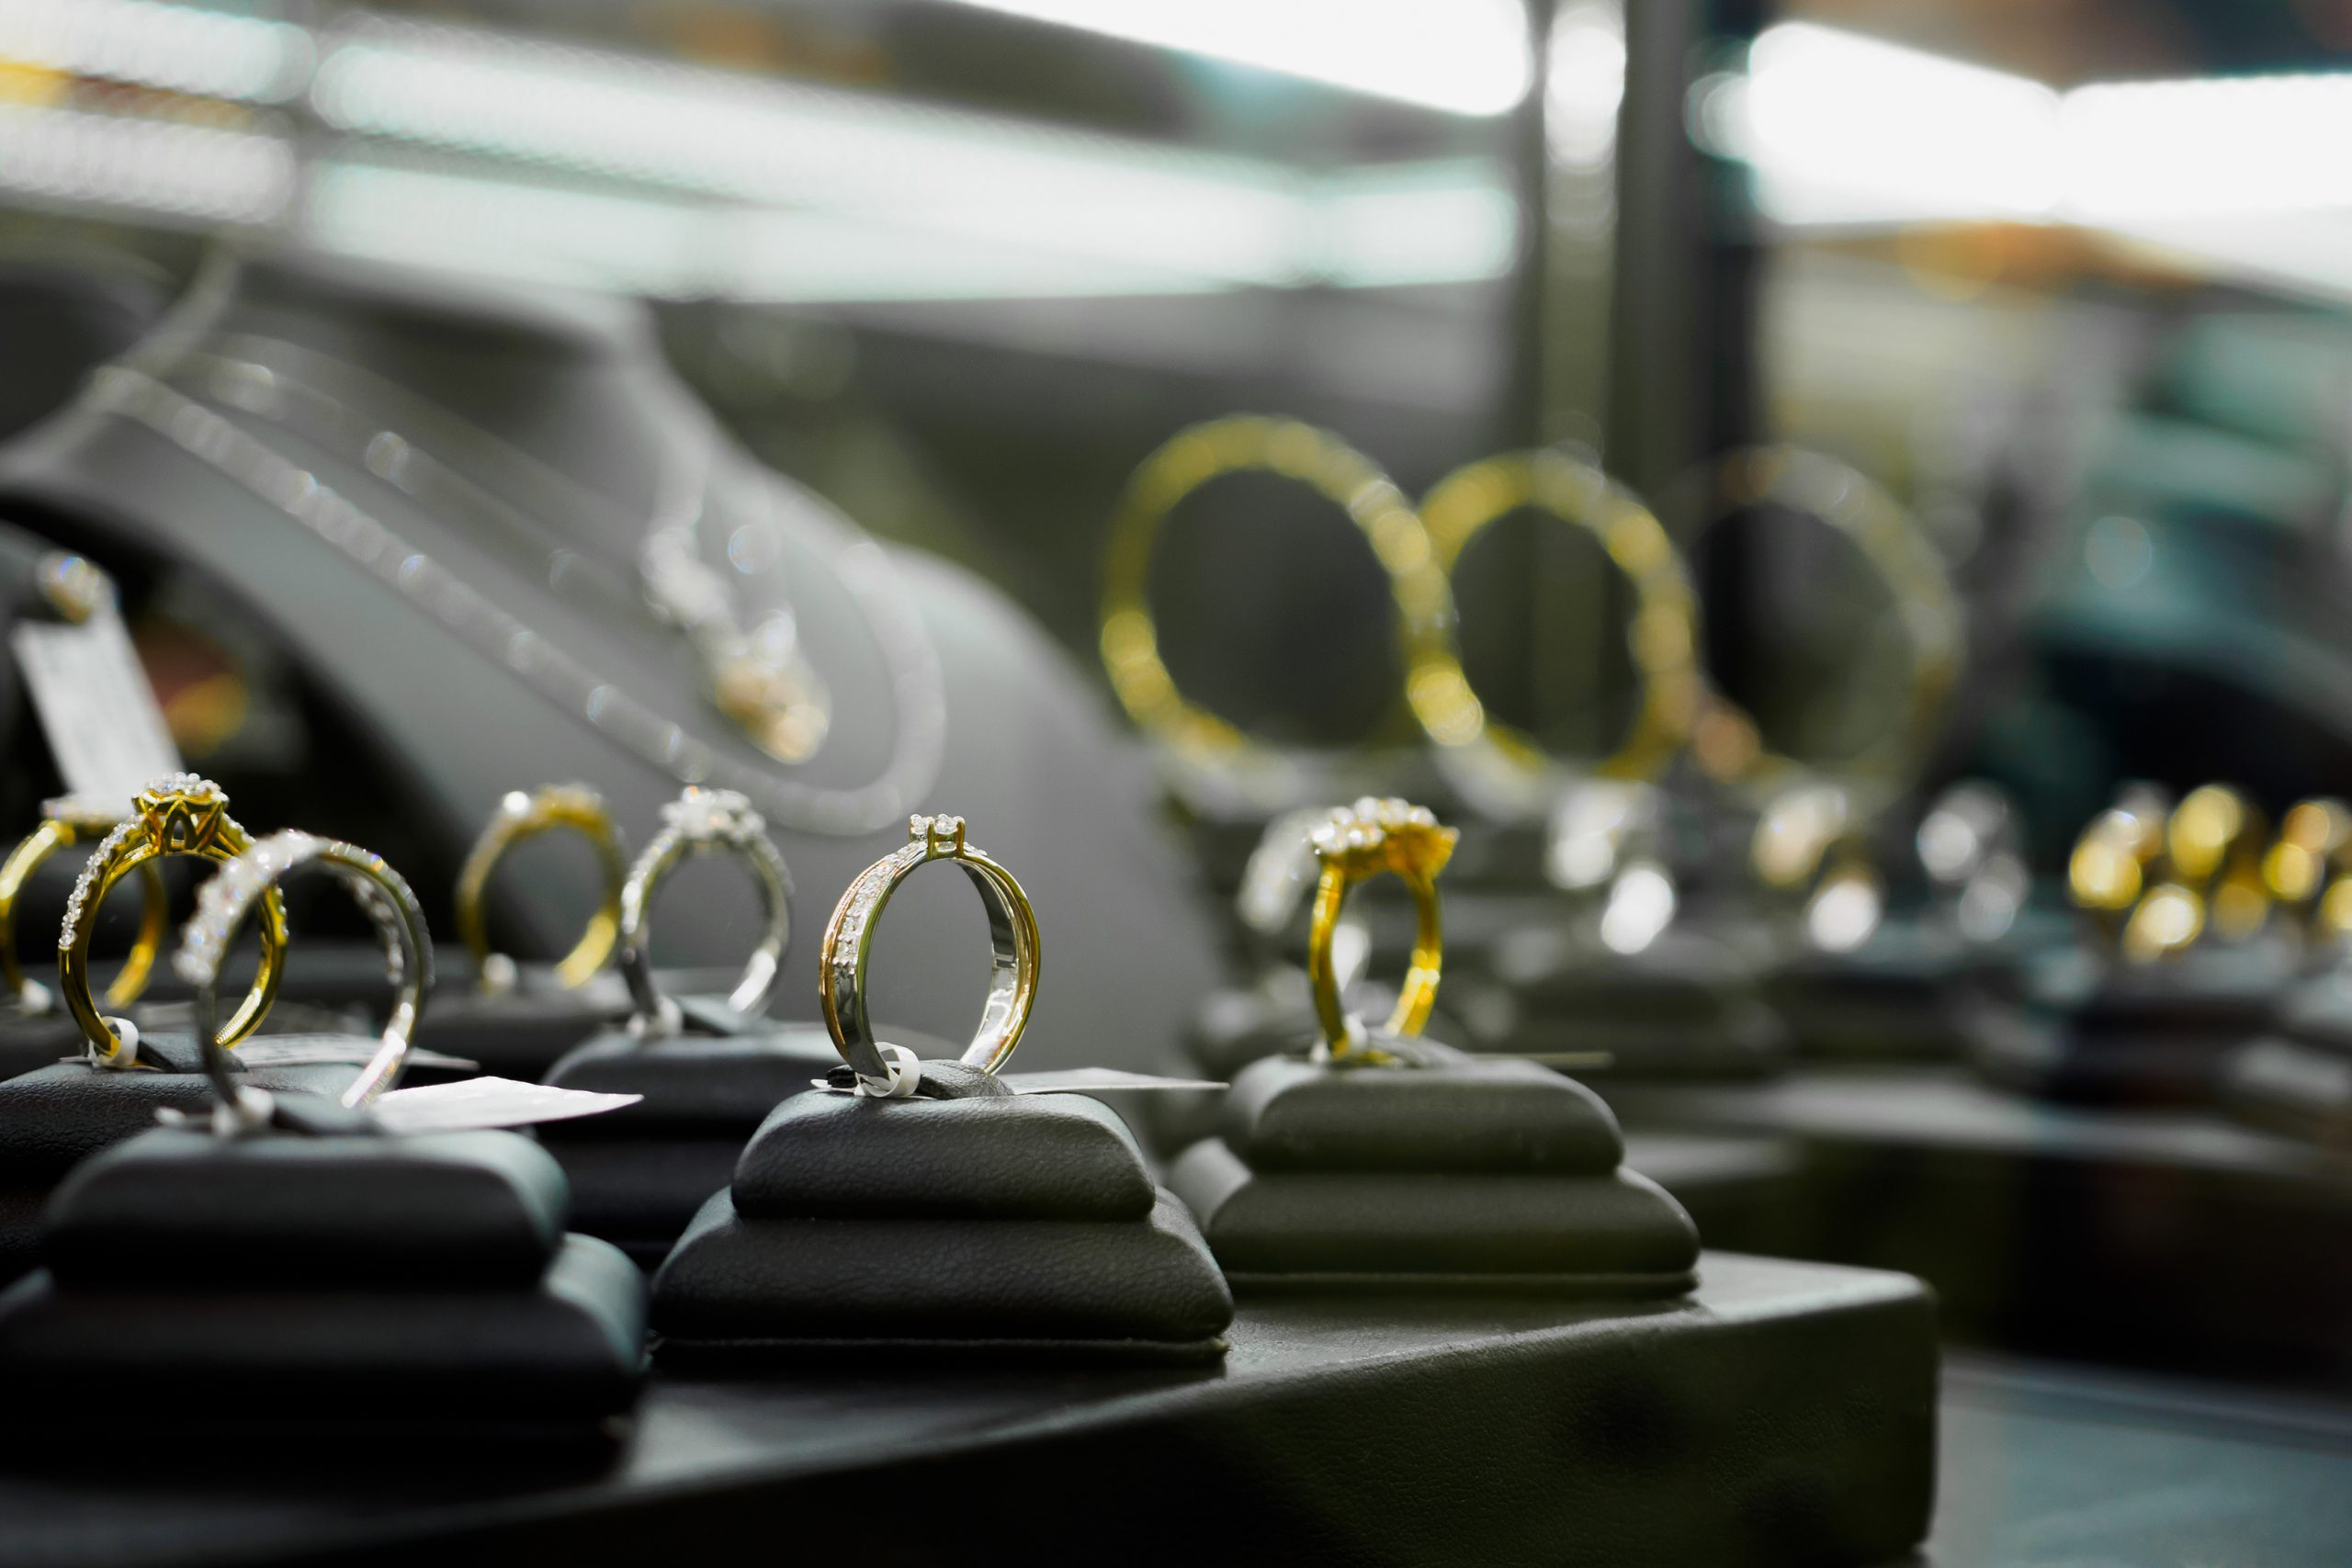 Top 5 Jewellery Display Stand Ideas For Small Shop Displays